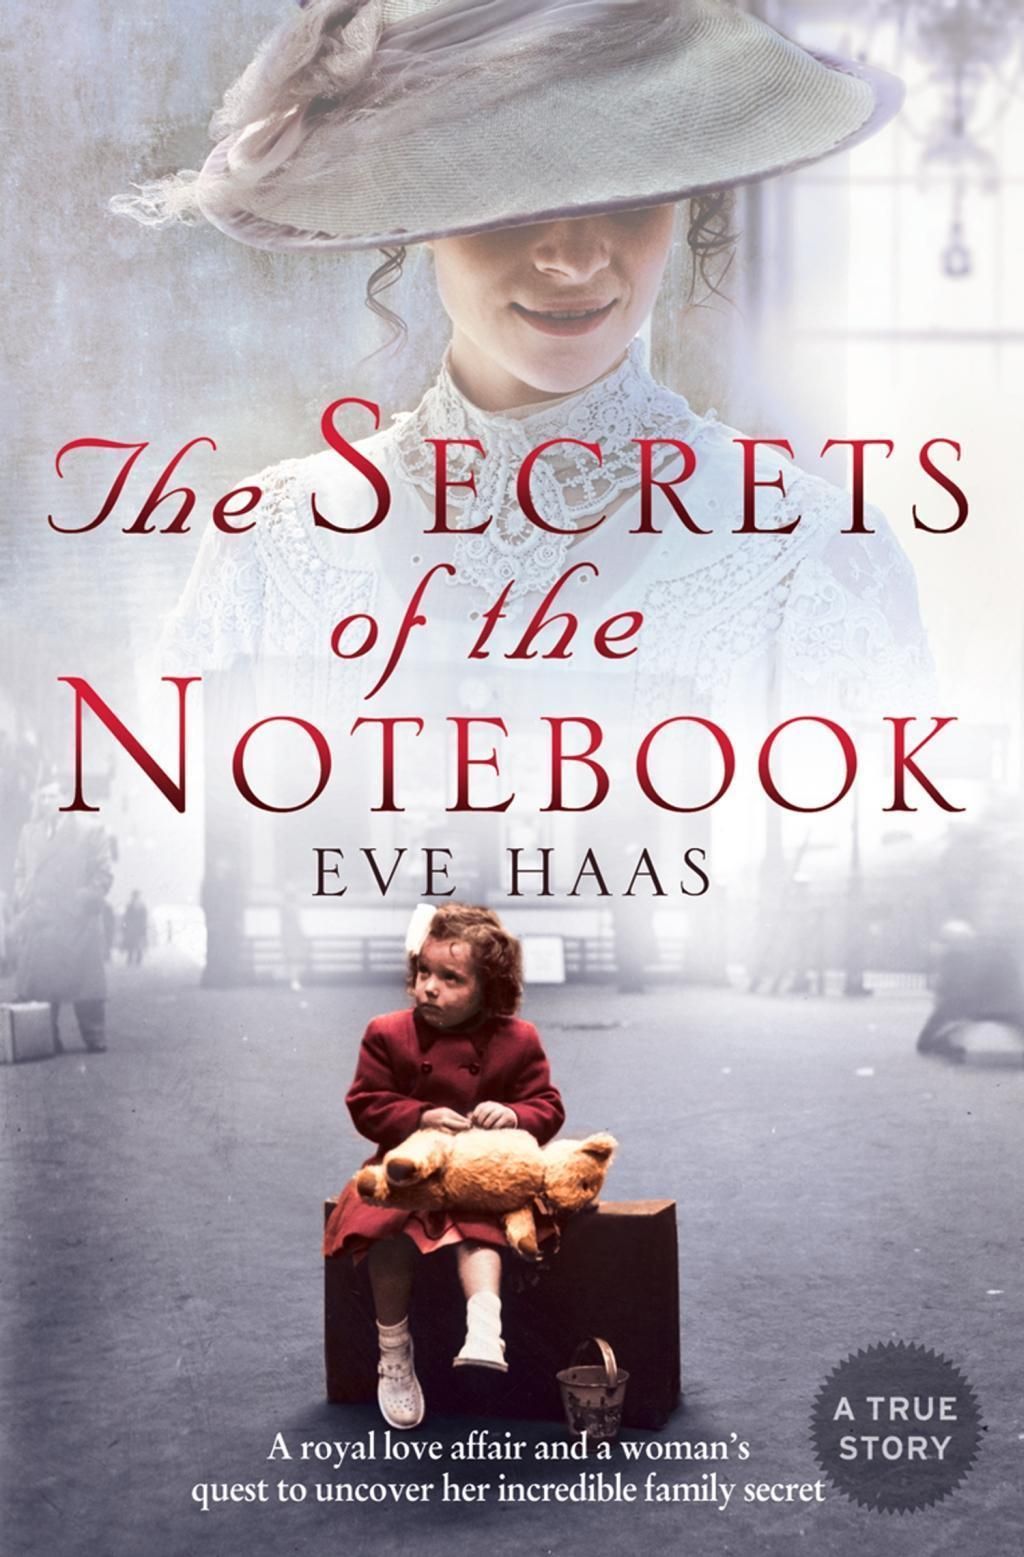 The Secrets of the Notebook: A royal love affair and a woman's quest to uncover her incredible family secret